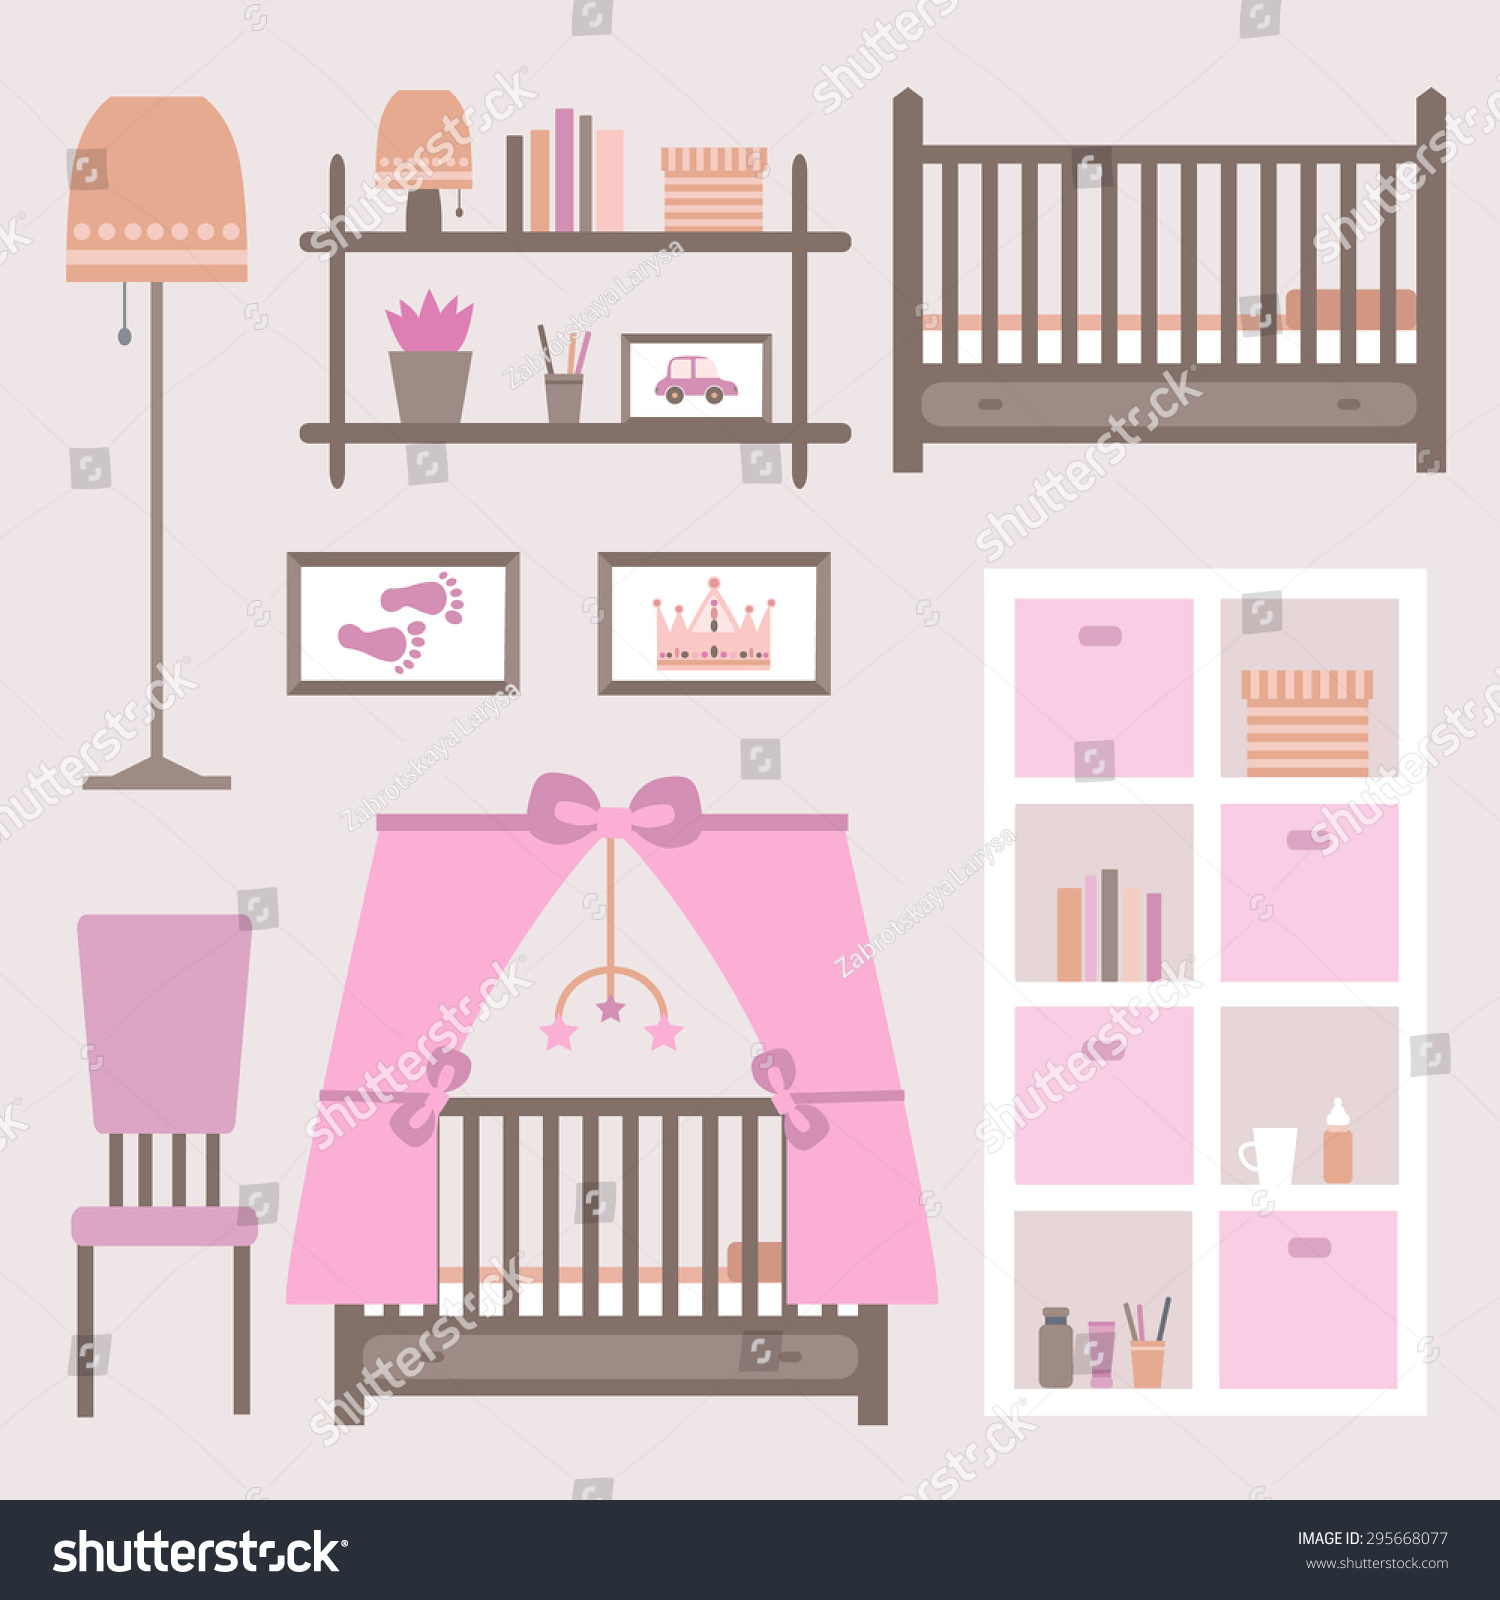 girl baby furniture. Child Room For The Newborn Girl. Baby With Furniture. Nursery Interior. Vector Girl Furniture